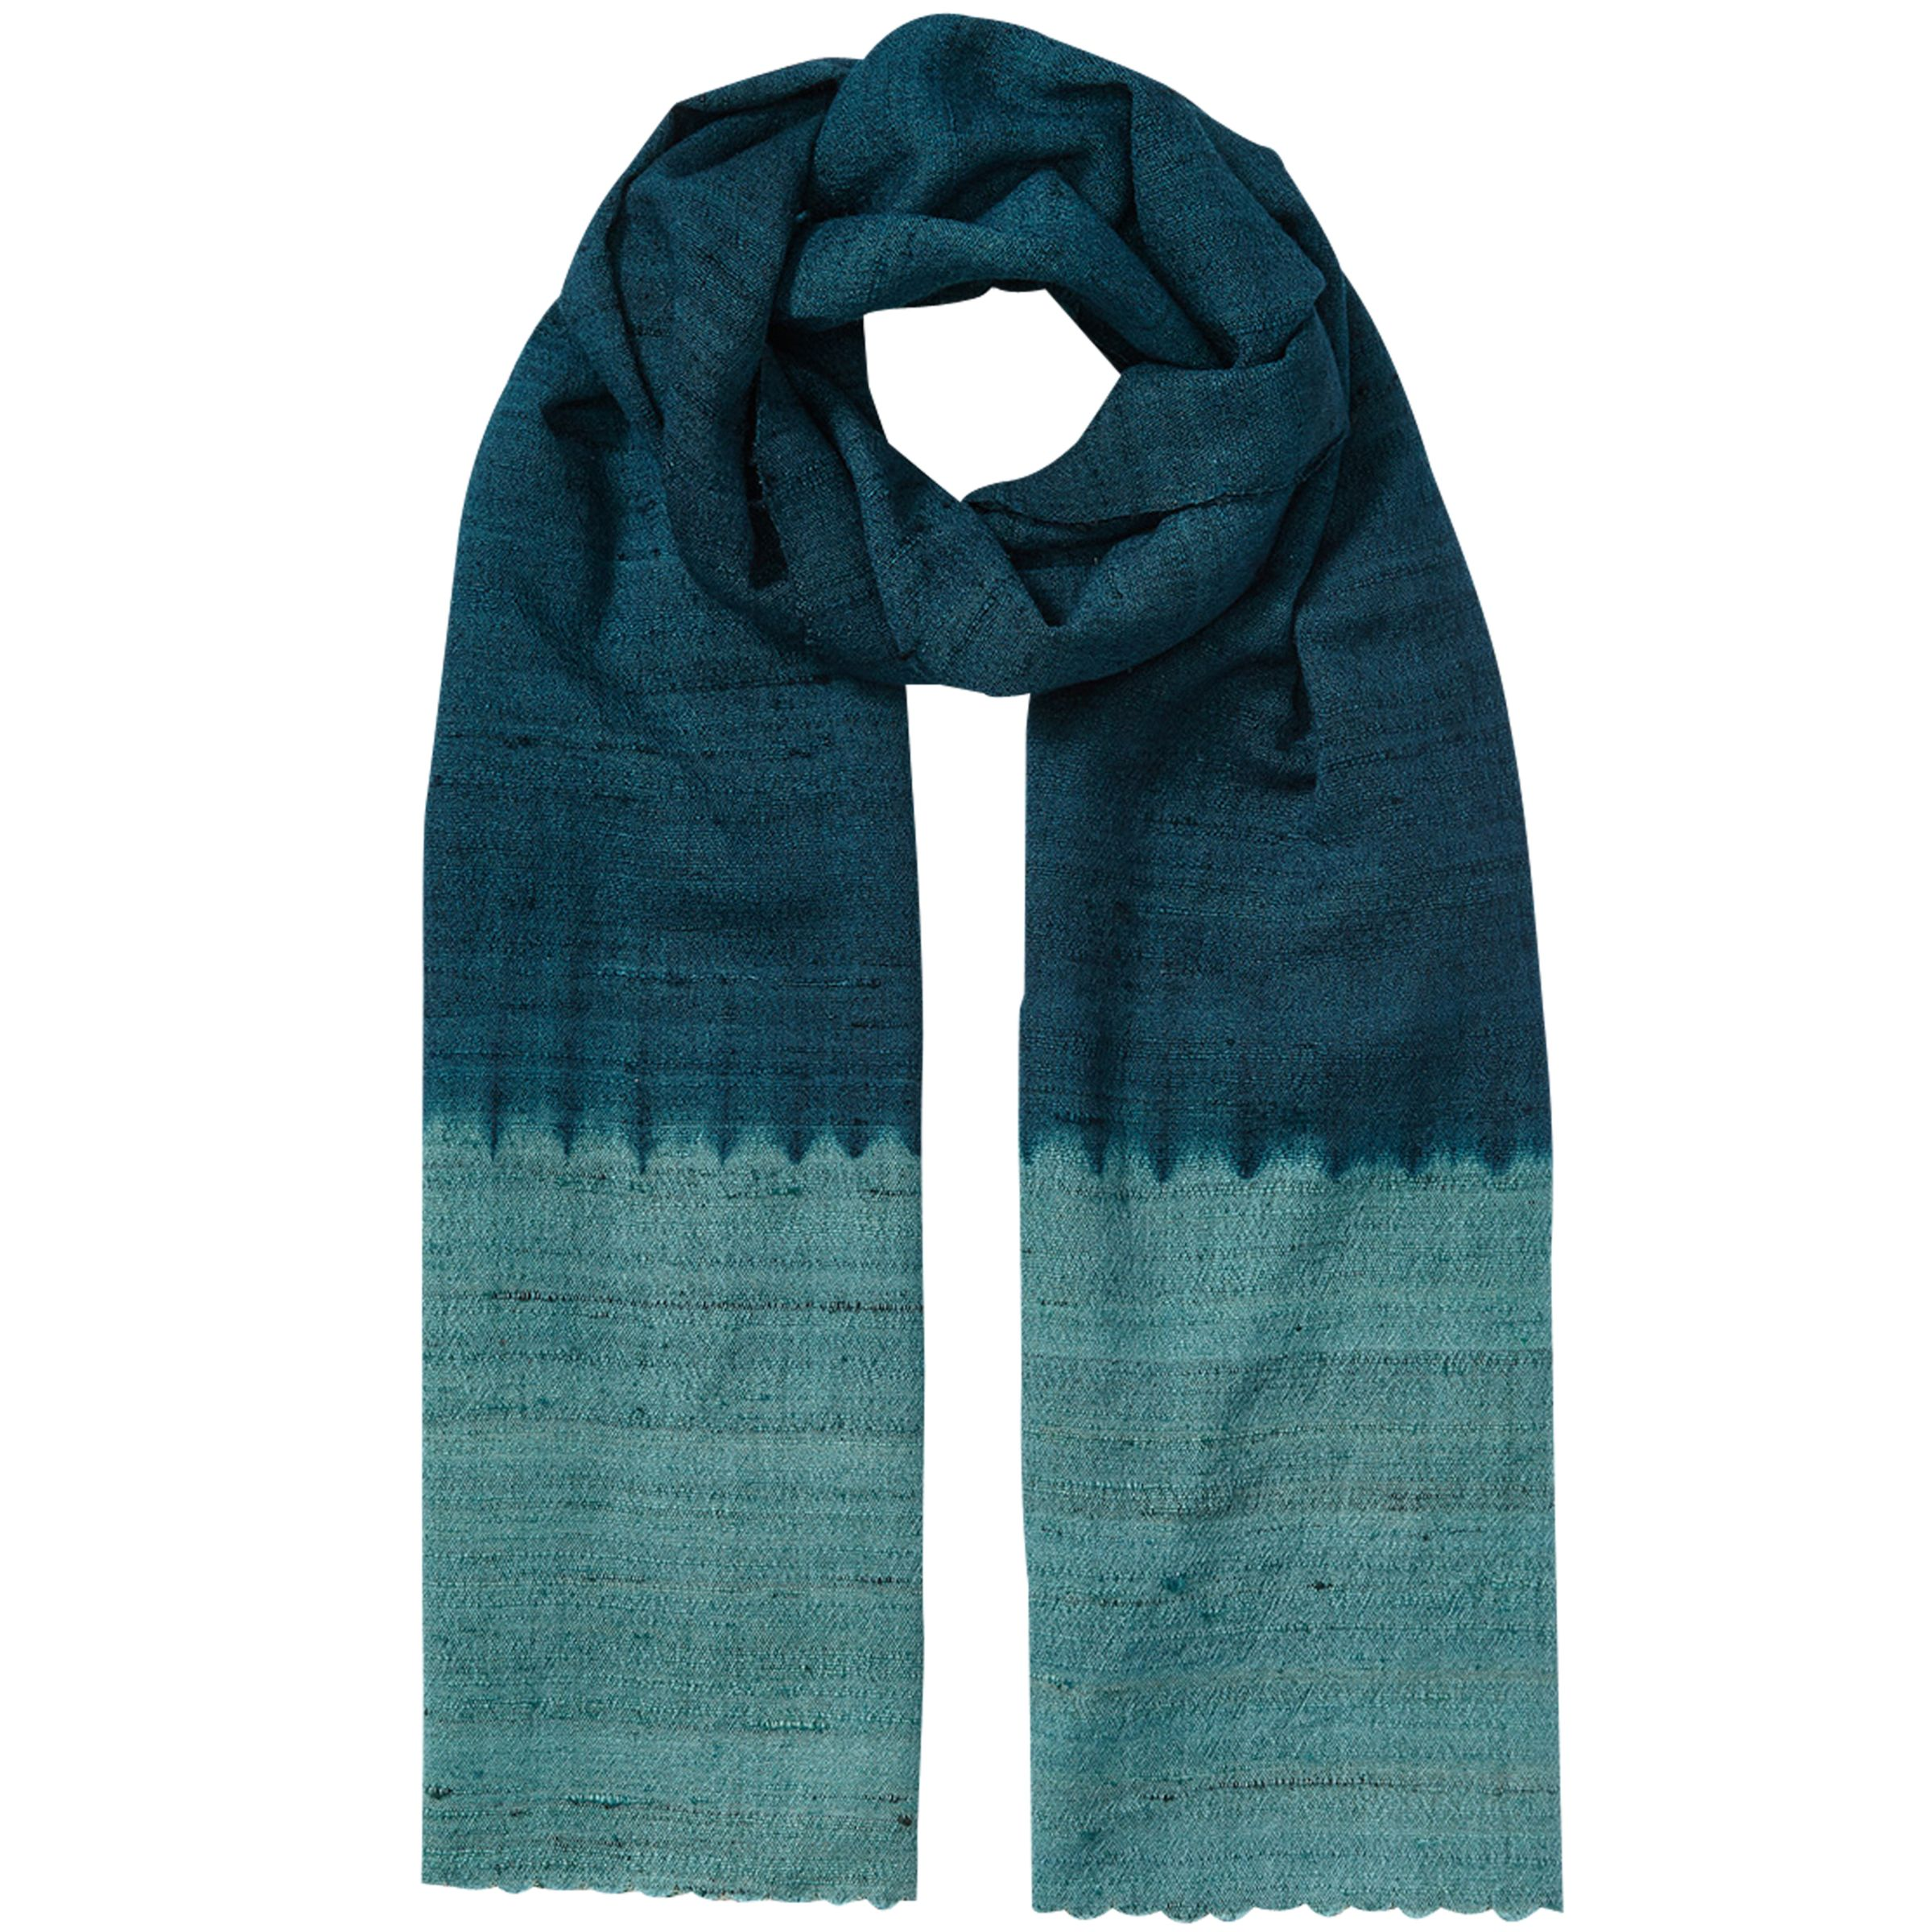 East East Ombre Border Scarf, Ensign